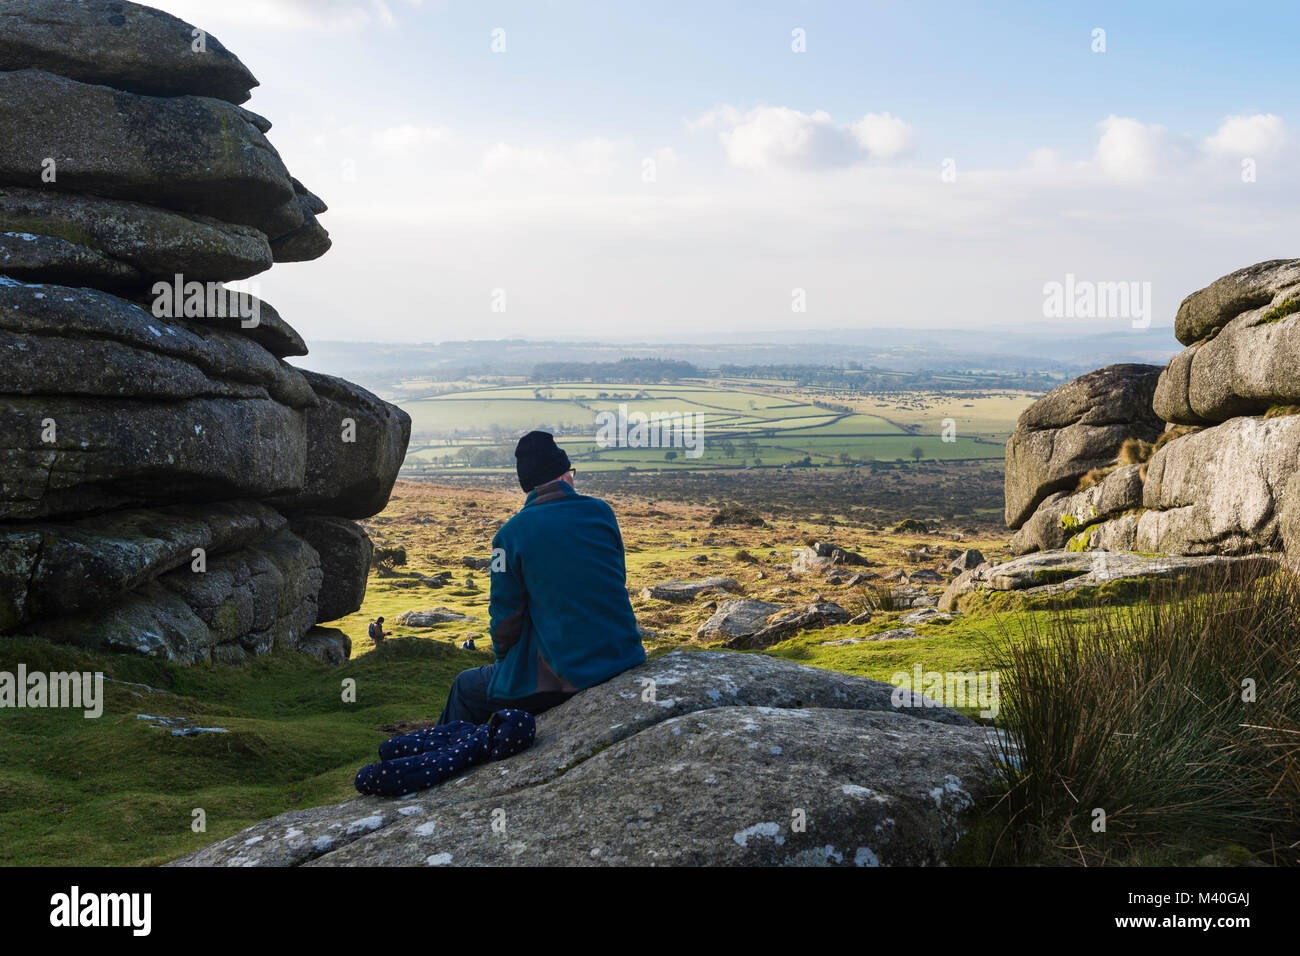 A man comtemplates the view of Dartmoor and beyond from his seat atop Pew Tor, Dartmoor National Park. Stock Photo